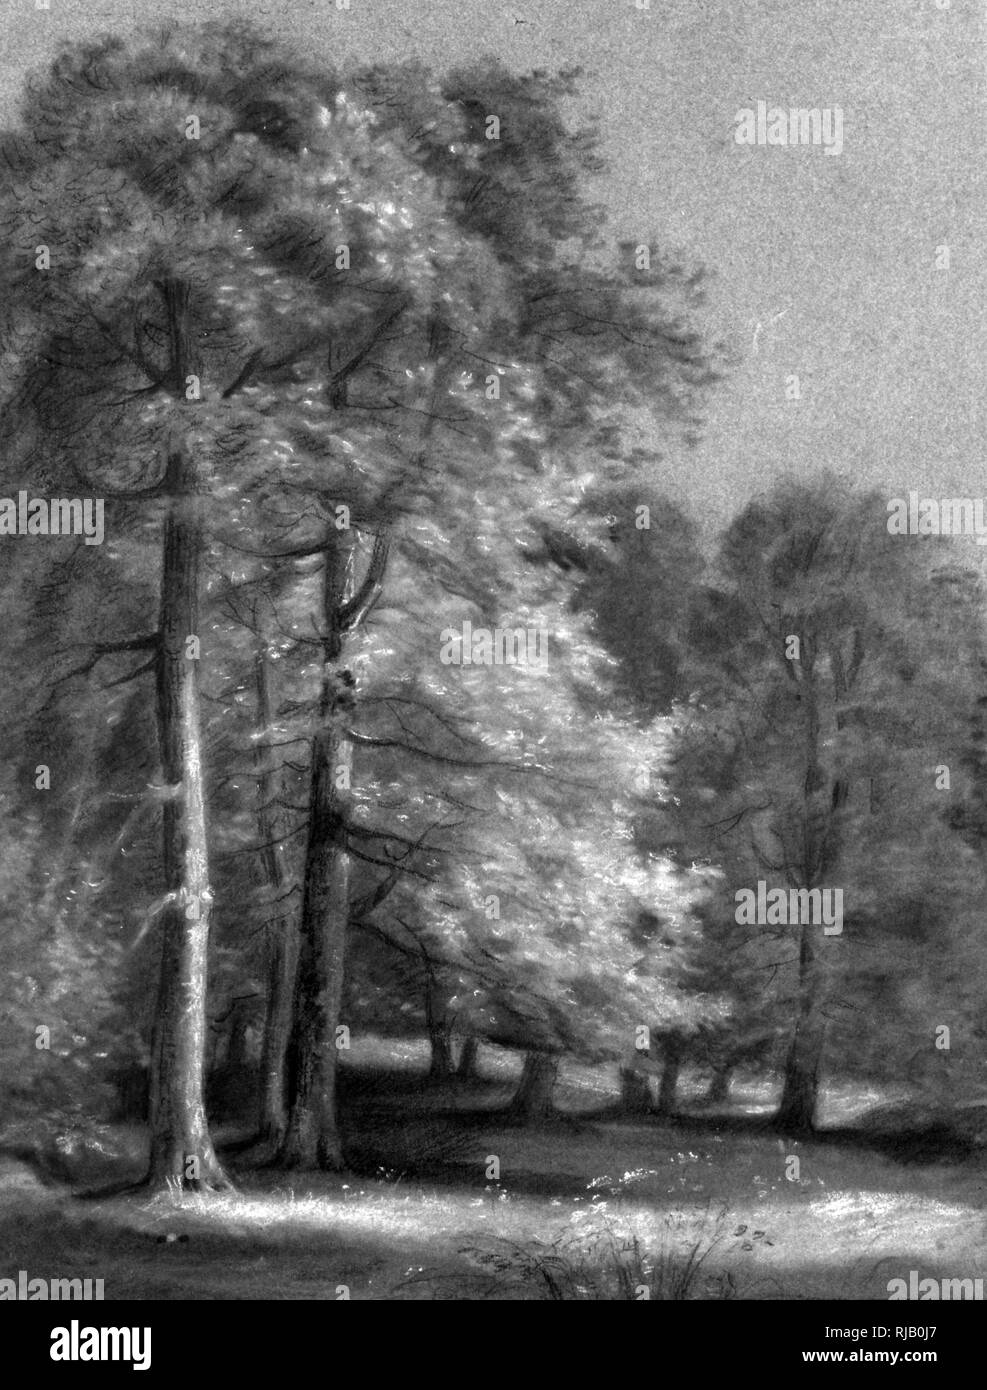 The Park at Malmaison, 1819, by Pierre-Paul Prud'hon (1758 - 1823); French Romantic painter.  Black and white chalk on blue laid paper. Landscape studies are quite rare in Prud'hon's oeuvre. In depicting the site devoid of human figures, the artist focused his attention on the careful rendering of the effects of light and shade. The setting has been identified as a view of the park of Malmaison, the site of Empress Josephine Bonaparte's residence, about nine miles west of the center of Paris - Stock Image